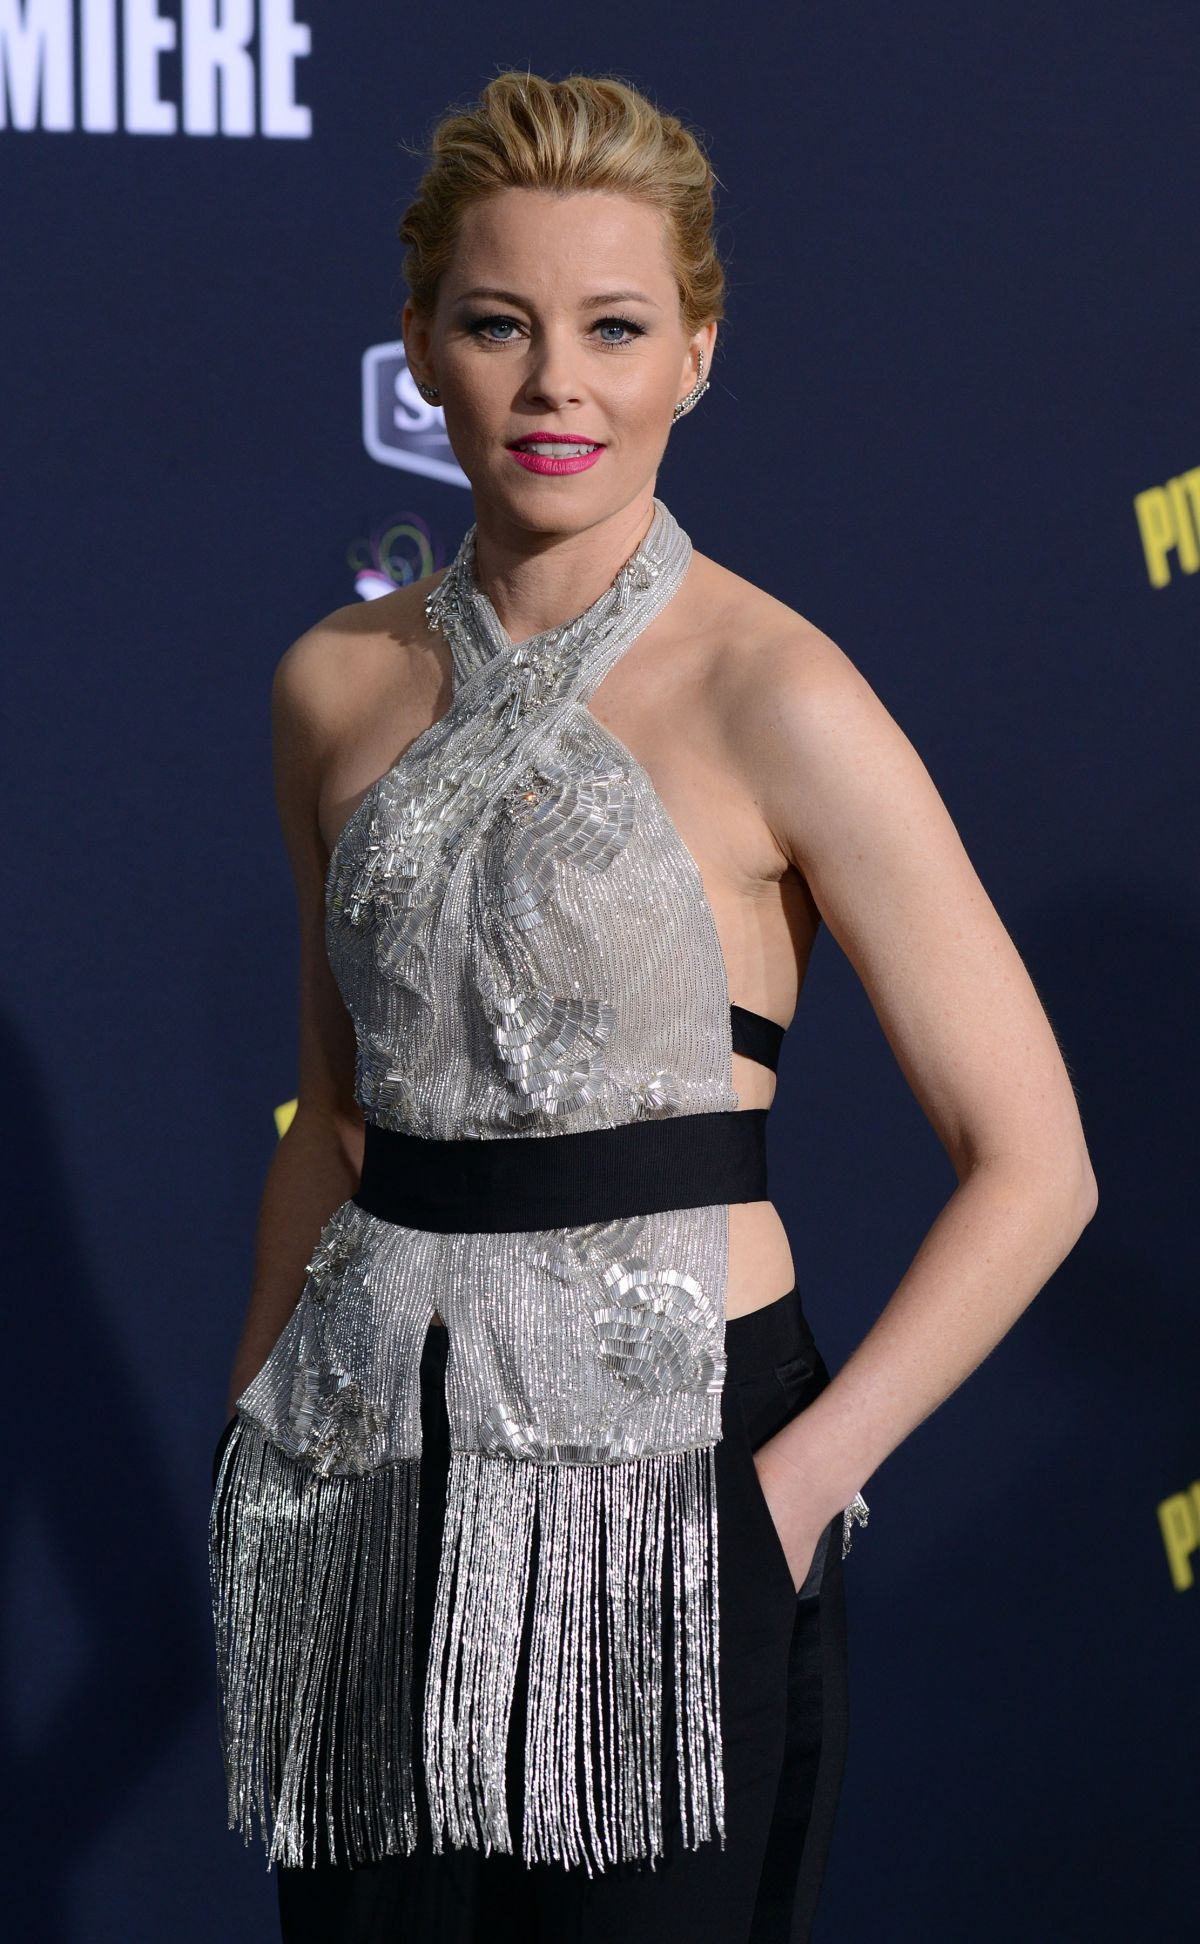 ELIZABETH BANKS at Pitch Perfect 2 Premiere in Los Angeles